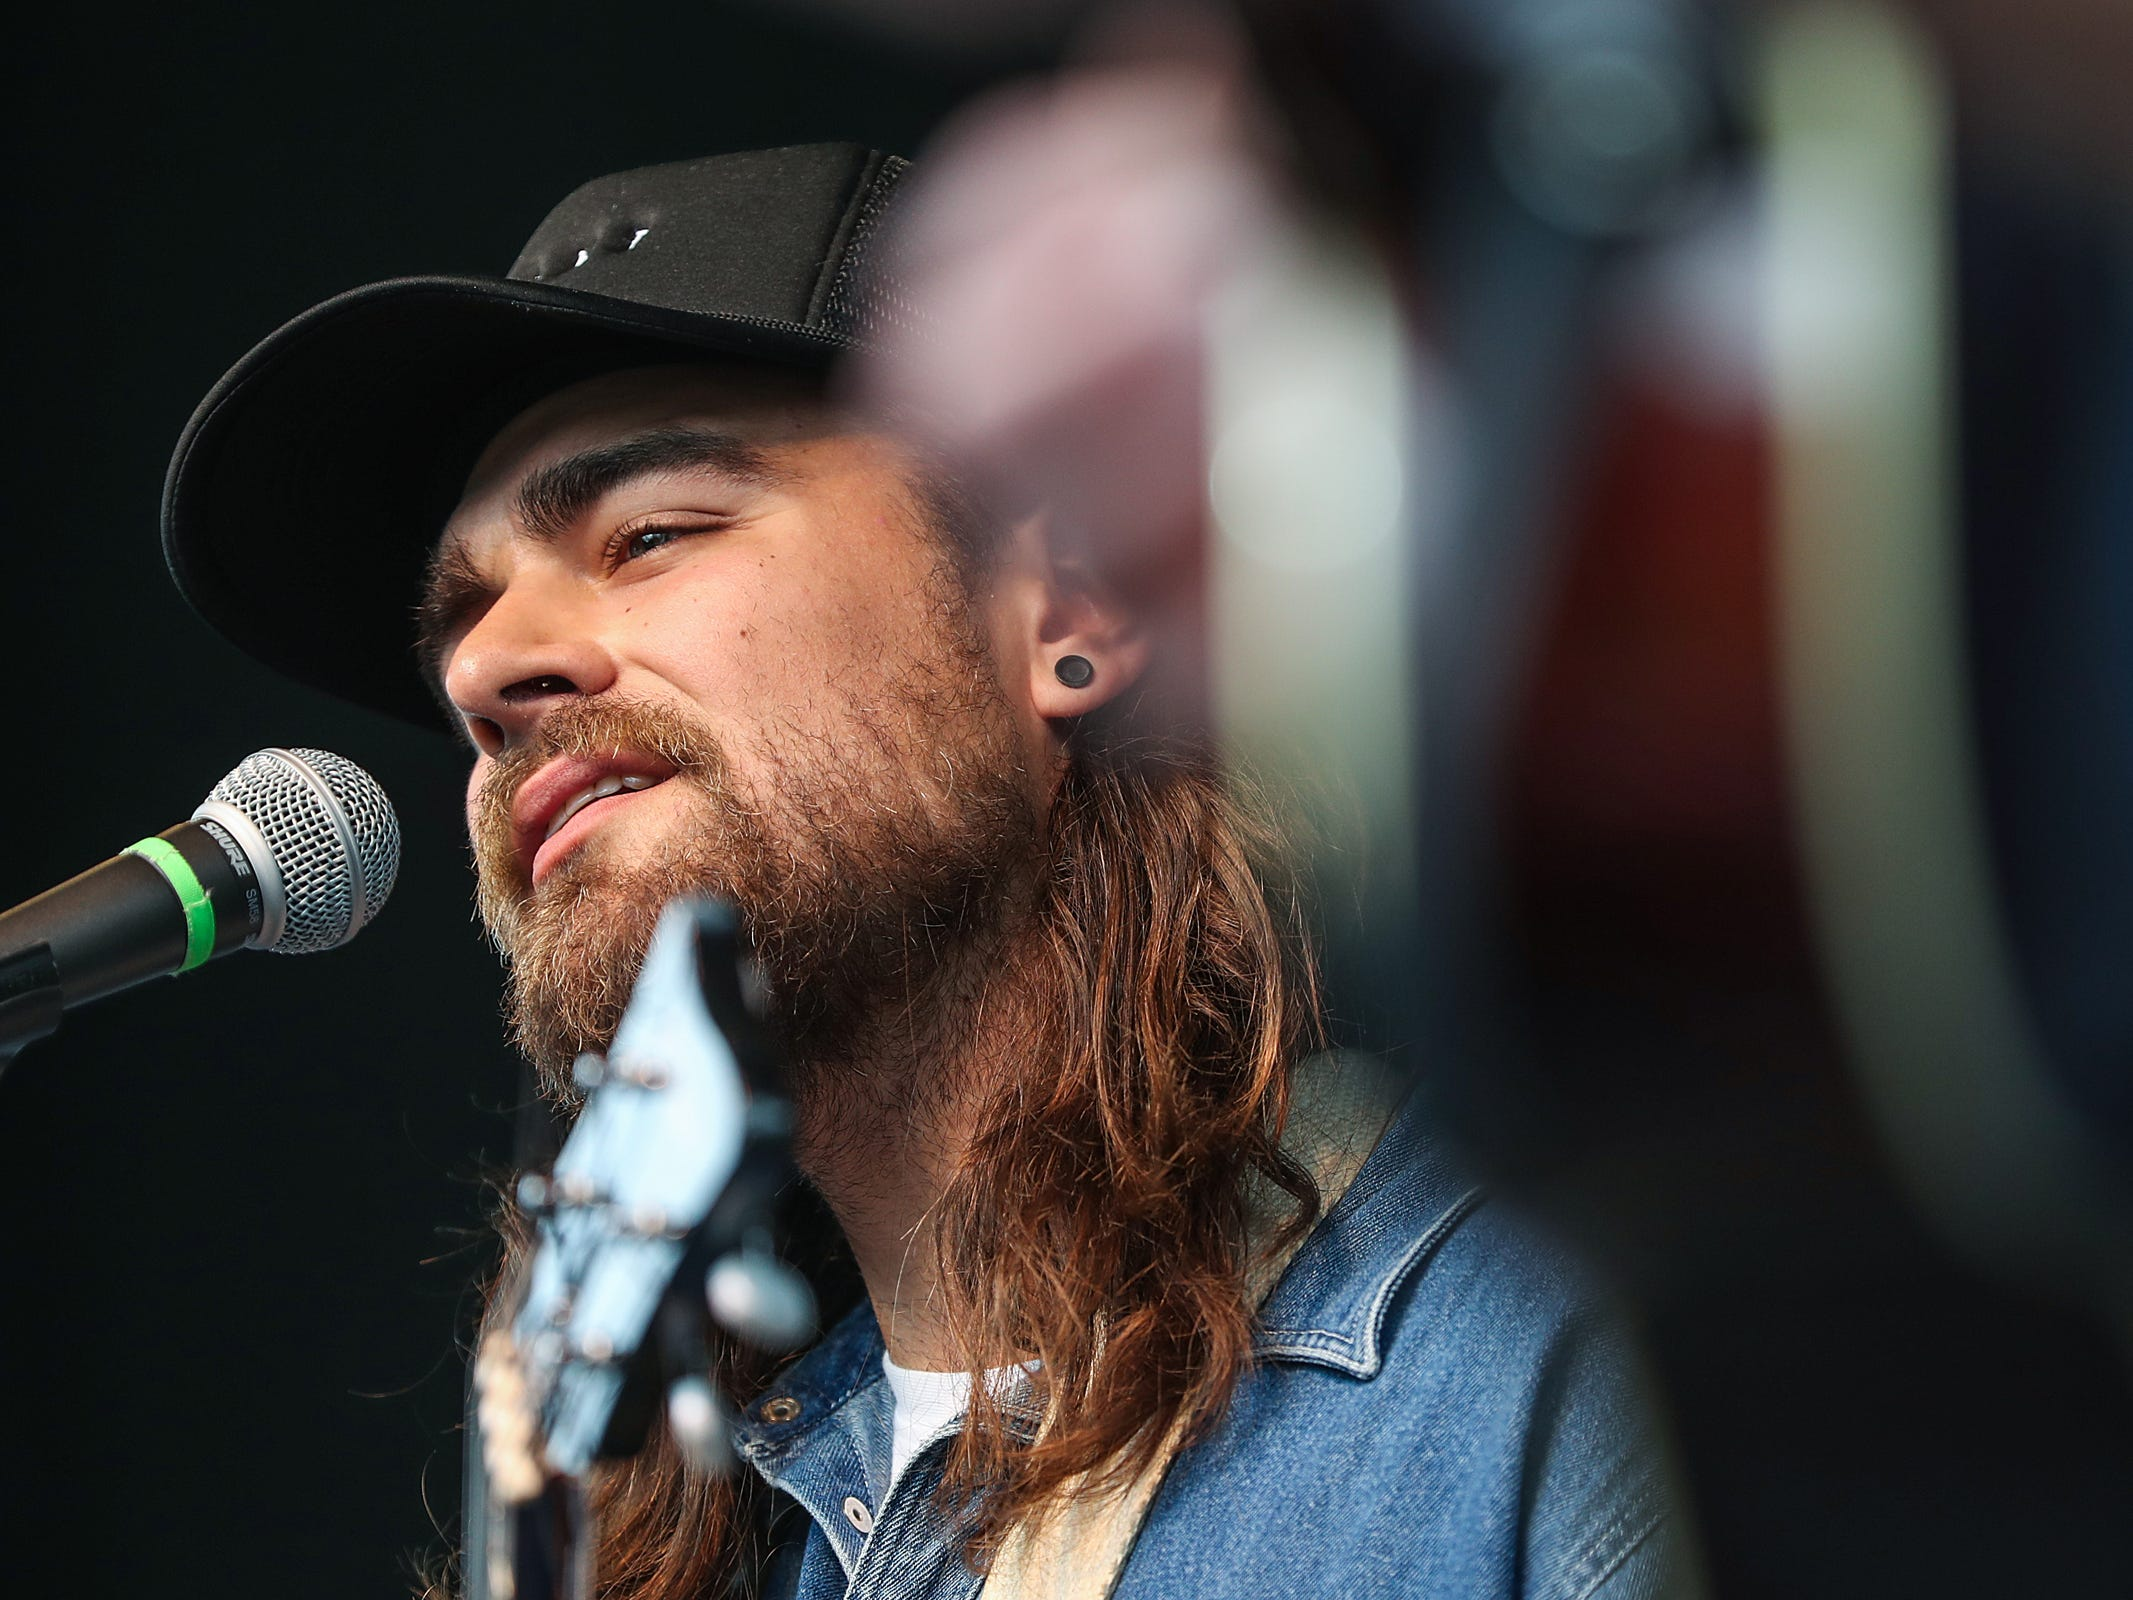 Bassist and vocalist Matt Vinson performs with Ohio-based folk group Caamp at the inaugural Holler on the Hill music festival at Garfield Park in Indianapolis, Saturday, Sept. 22, 2018.